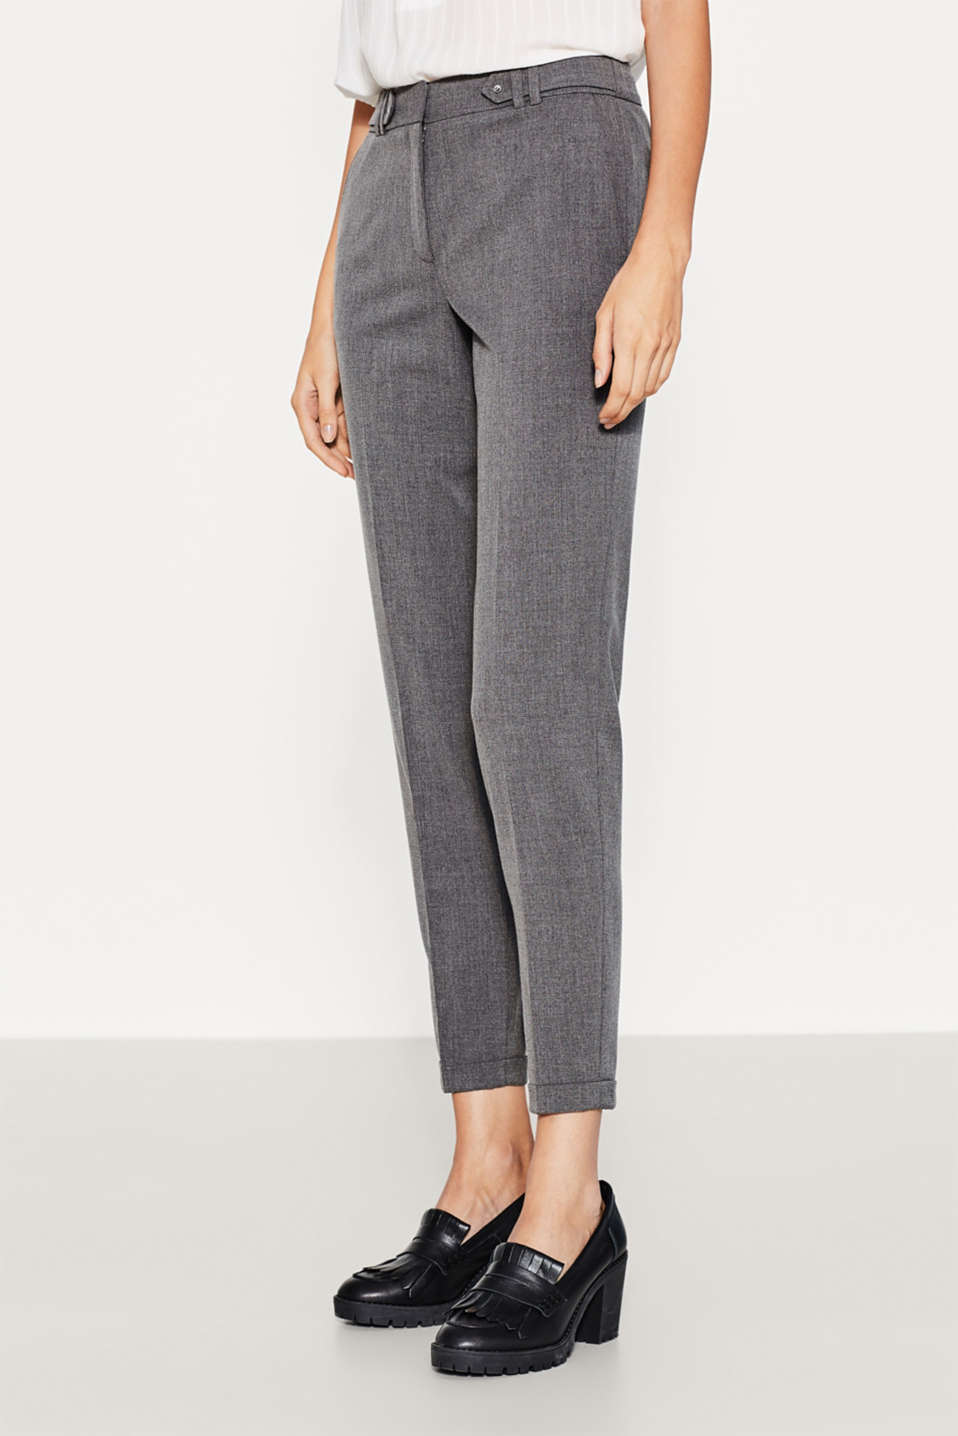 Esprit - Pantalon stretch raccourci à brides